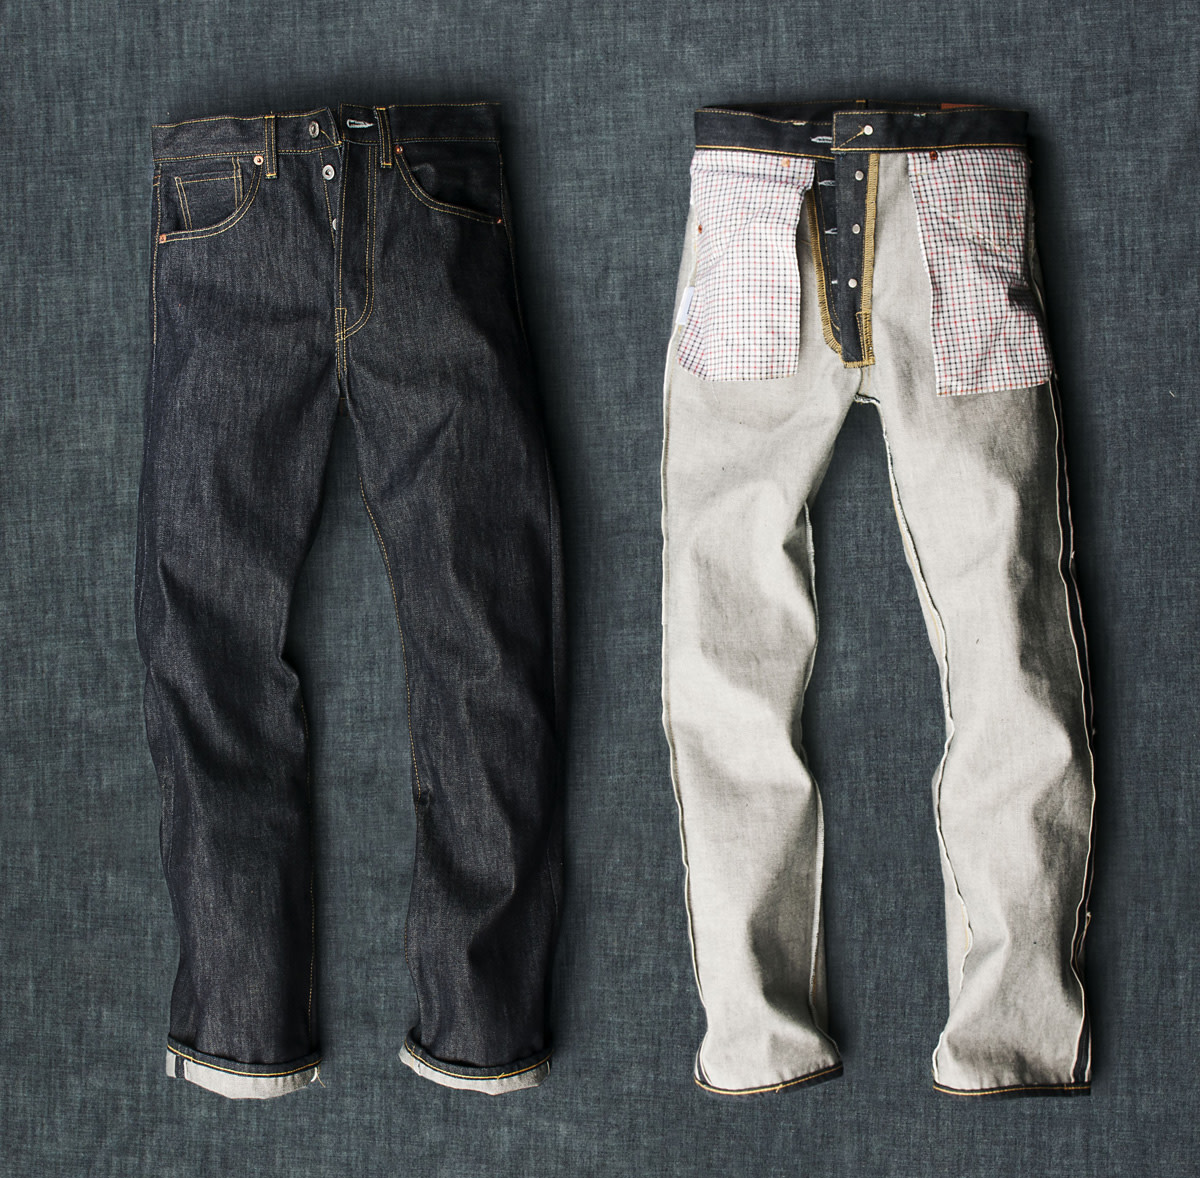 levis-vintage-clothing-unionmade-1944-501-jean-01